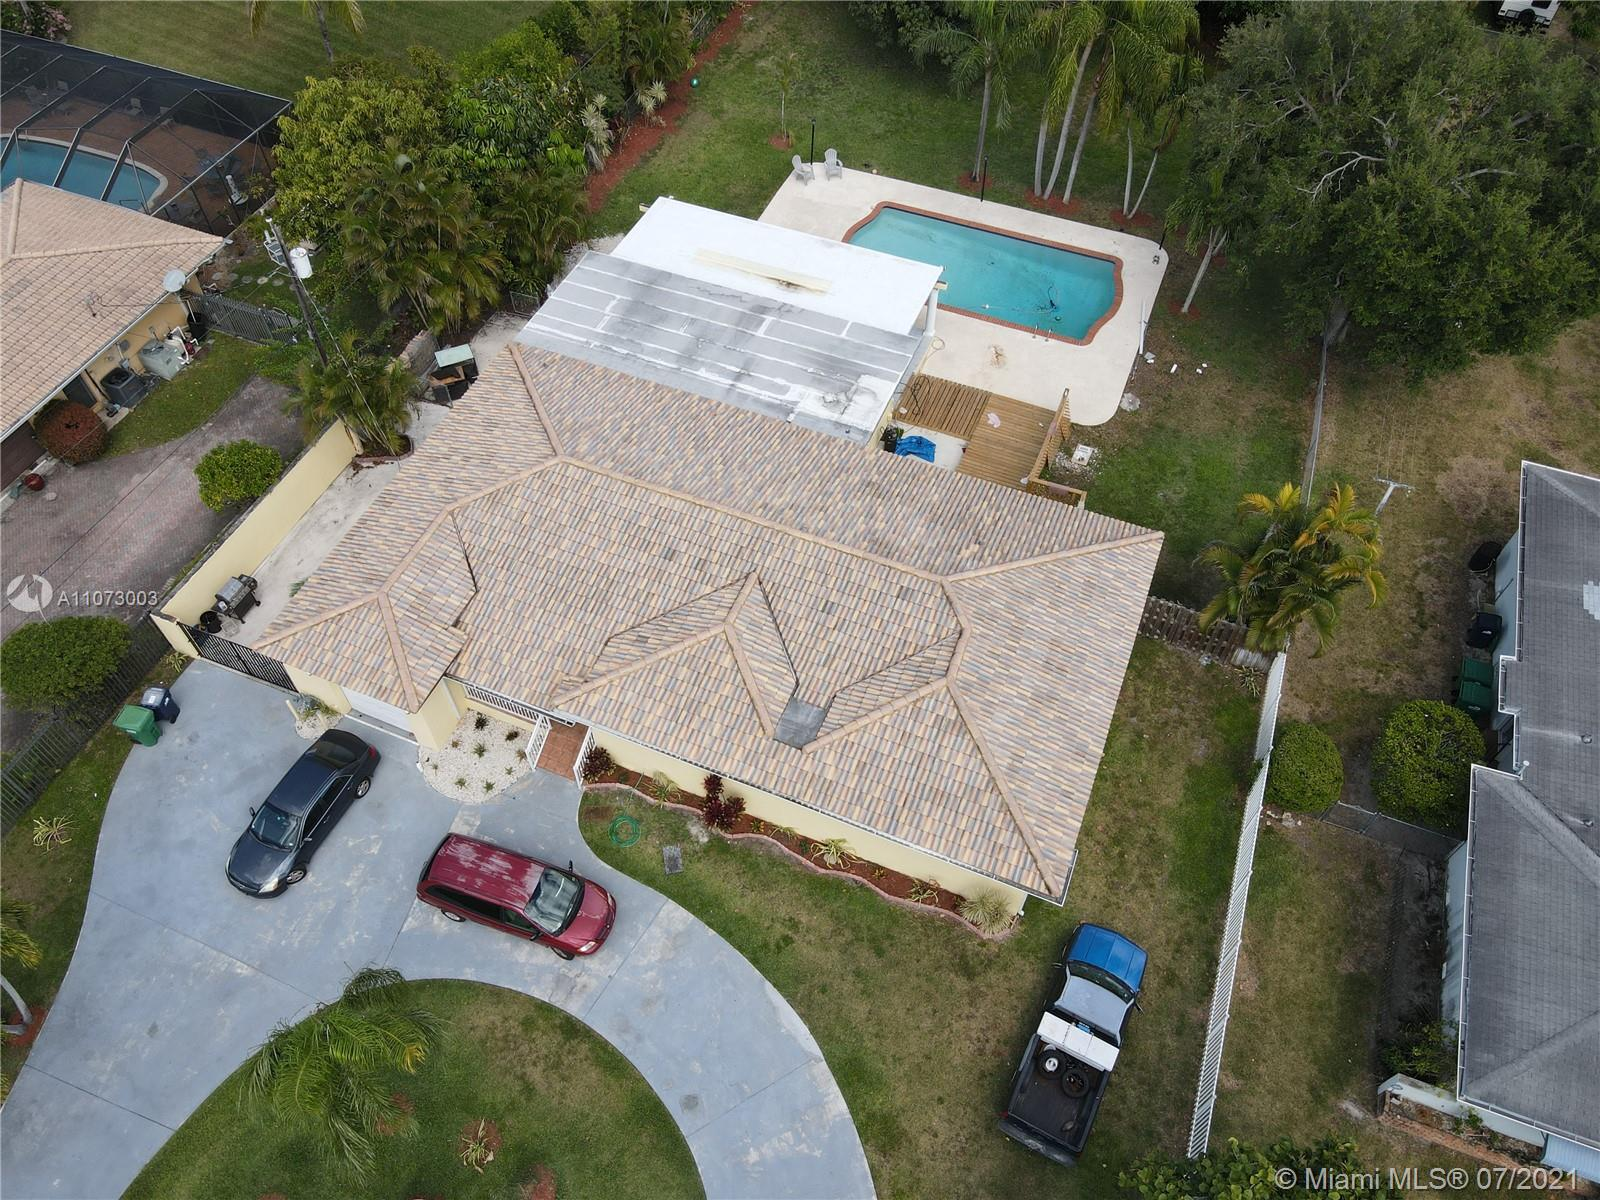 """Great home with an oversized pool, the home has a one-car garage, impact windows, French doors and a very large Master bedroom.  The home has a new roof, new AC and a natural gas stove.  the home also features a new wood deck and was freshly painted.   The subject property is centrally located along the east side of SW 72 Avenue in Miami. This home is located on a large 22,216 SF lot just west of the Ludlum Trail and just north of Dadeland Mall. The home features three bedrooms and three bathrooms with a one car garage.  This area is rapidly changing with several new $1M dollar projects underway.  Great Family residence live """"As Is"""" ,Remodel/Update or redevelop the site. Many options."""